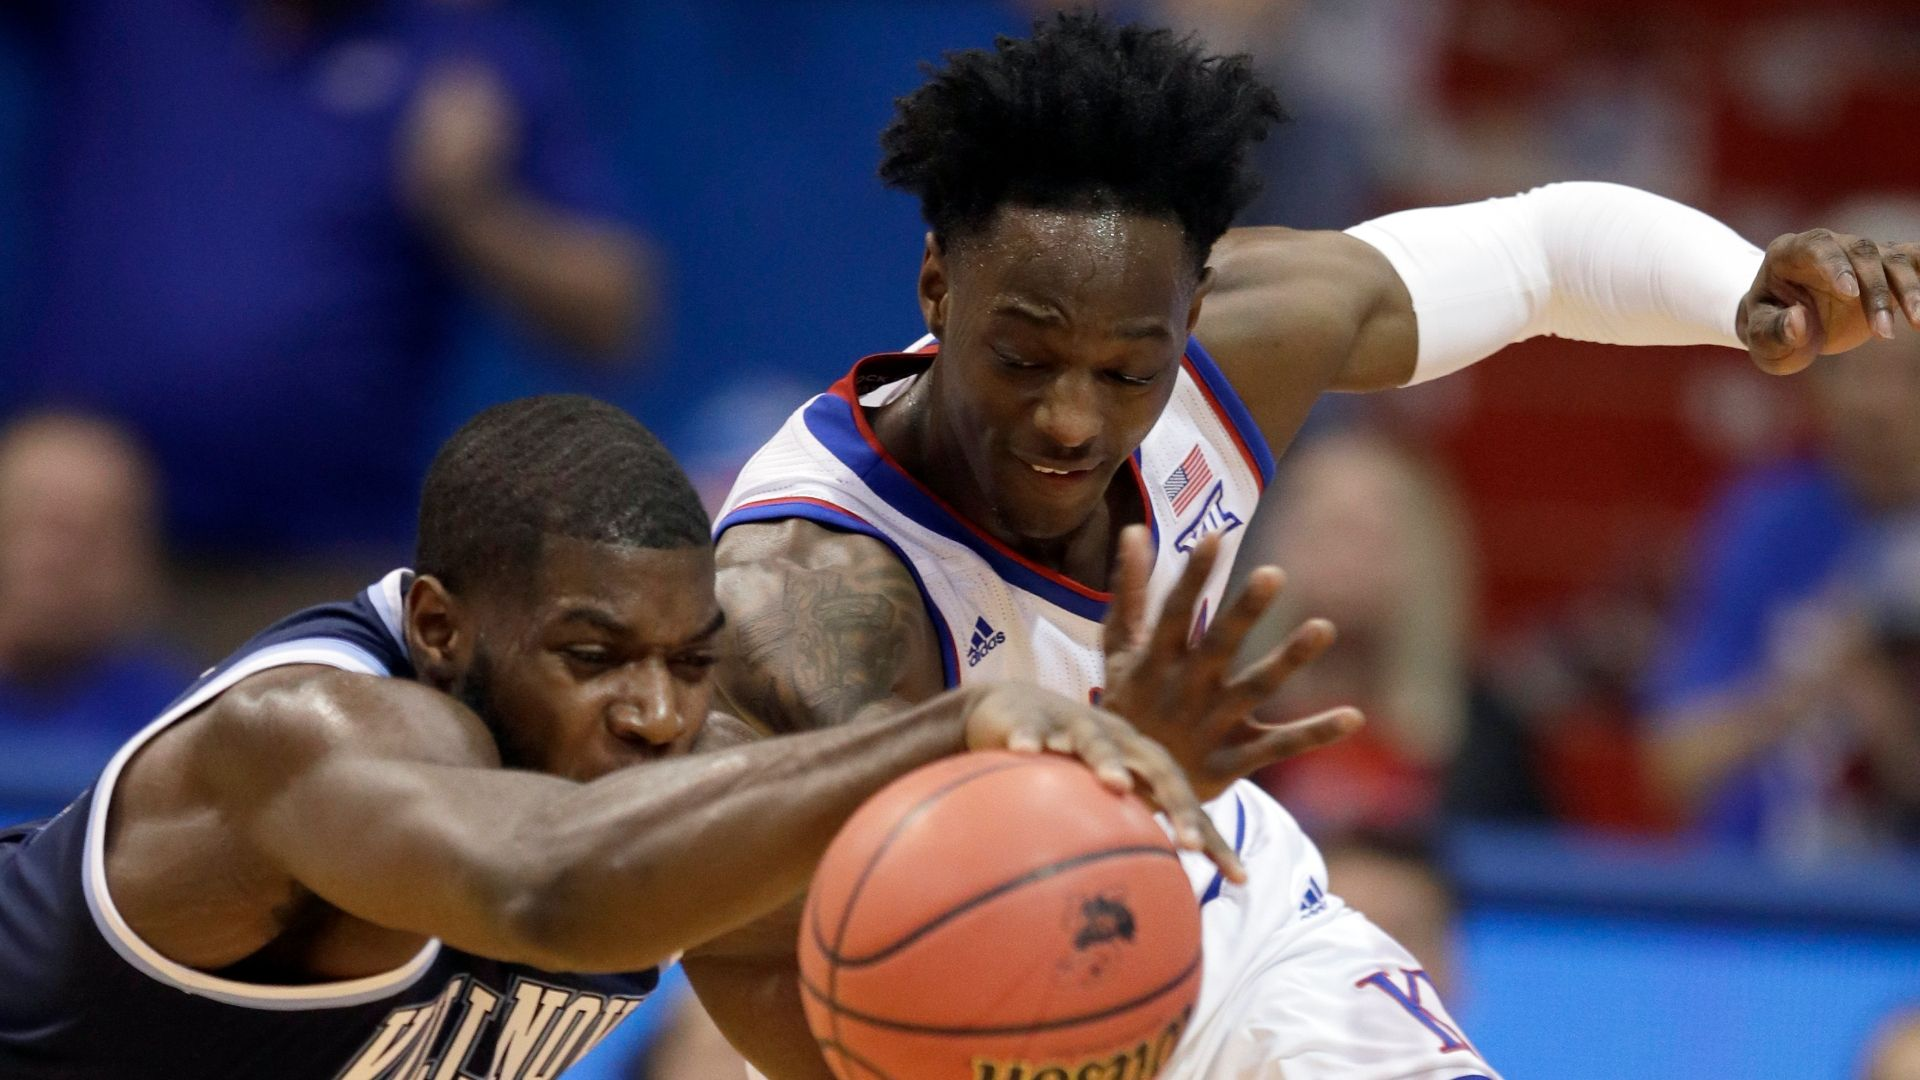 No. 1 Kansas hold off Nova in back-and-forth contest